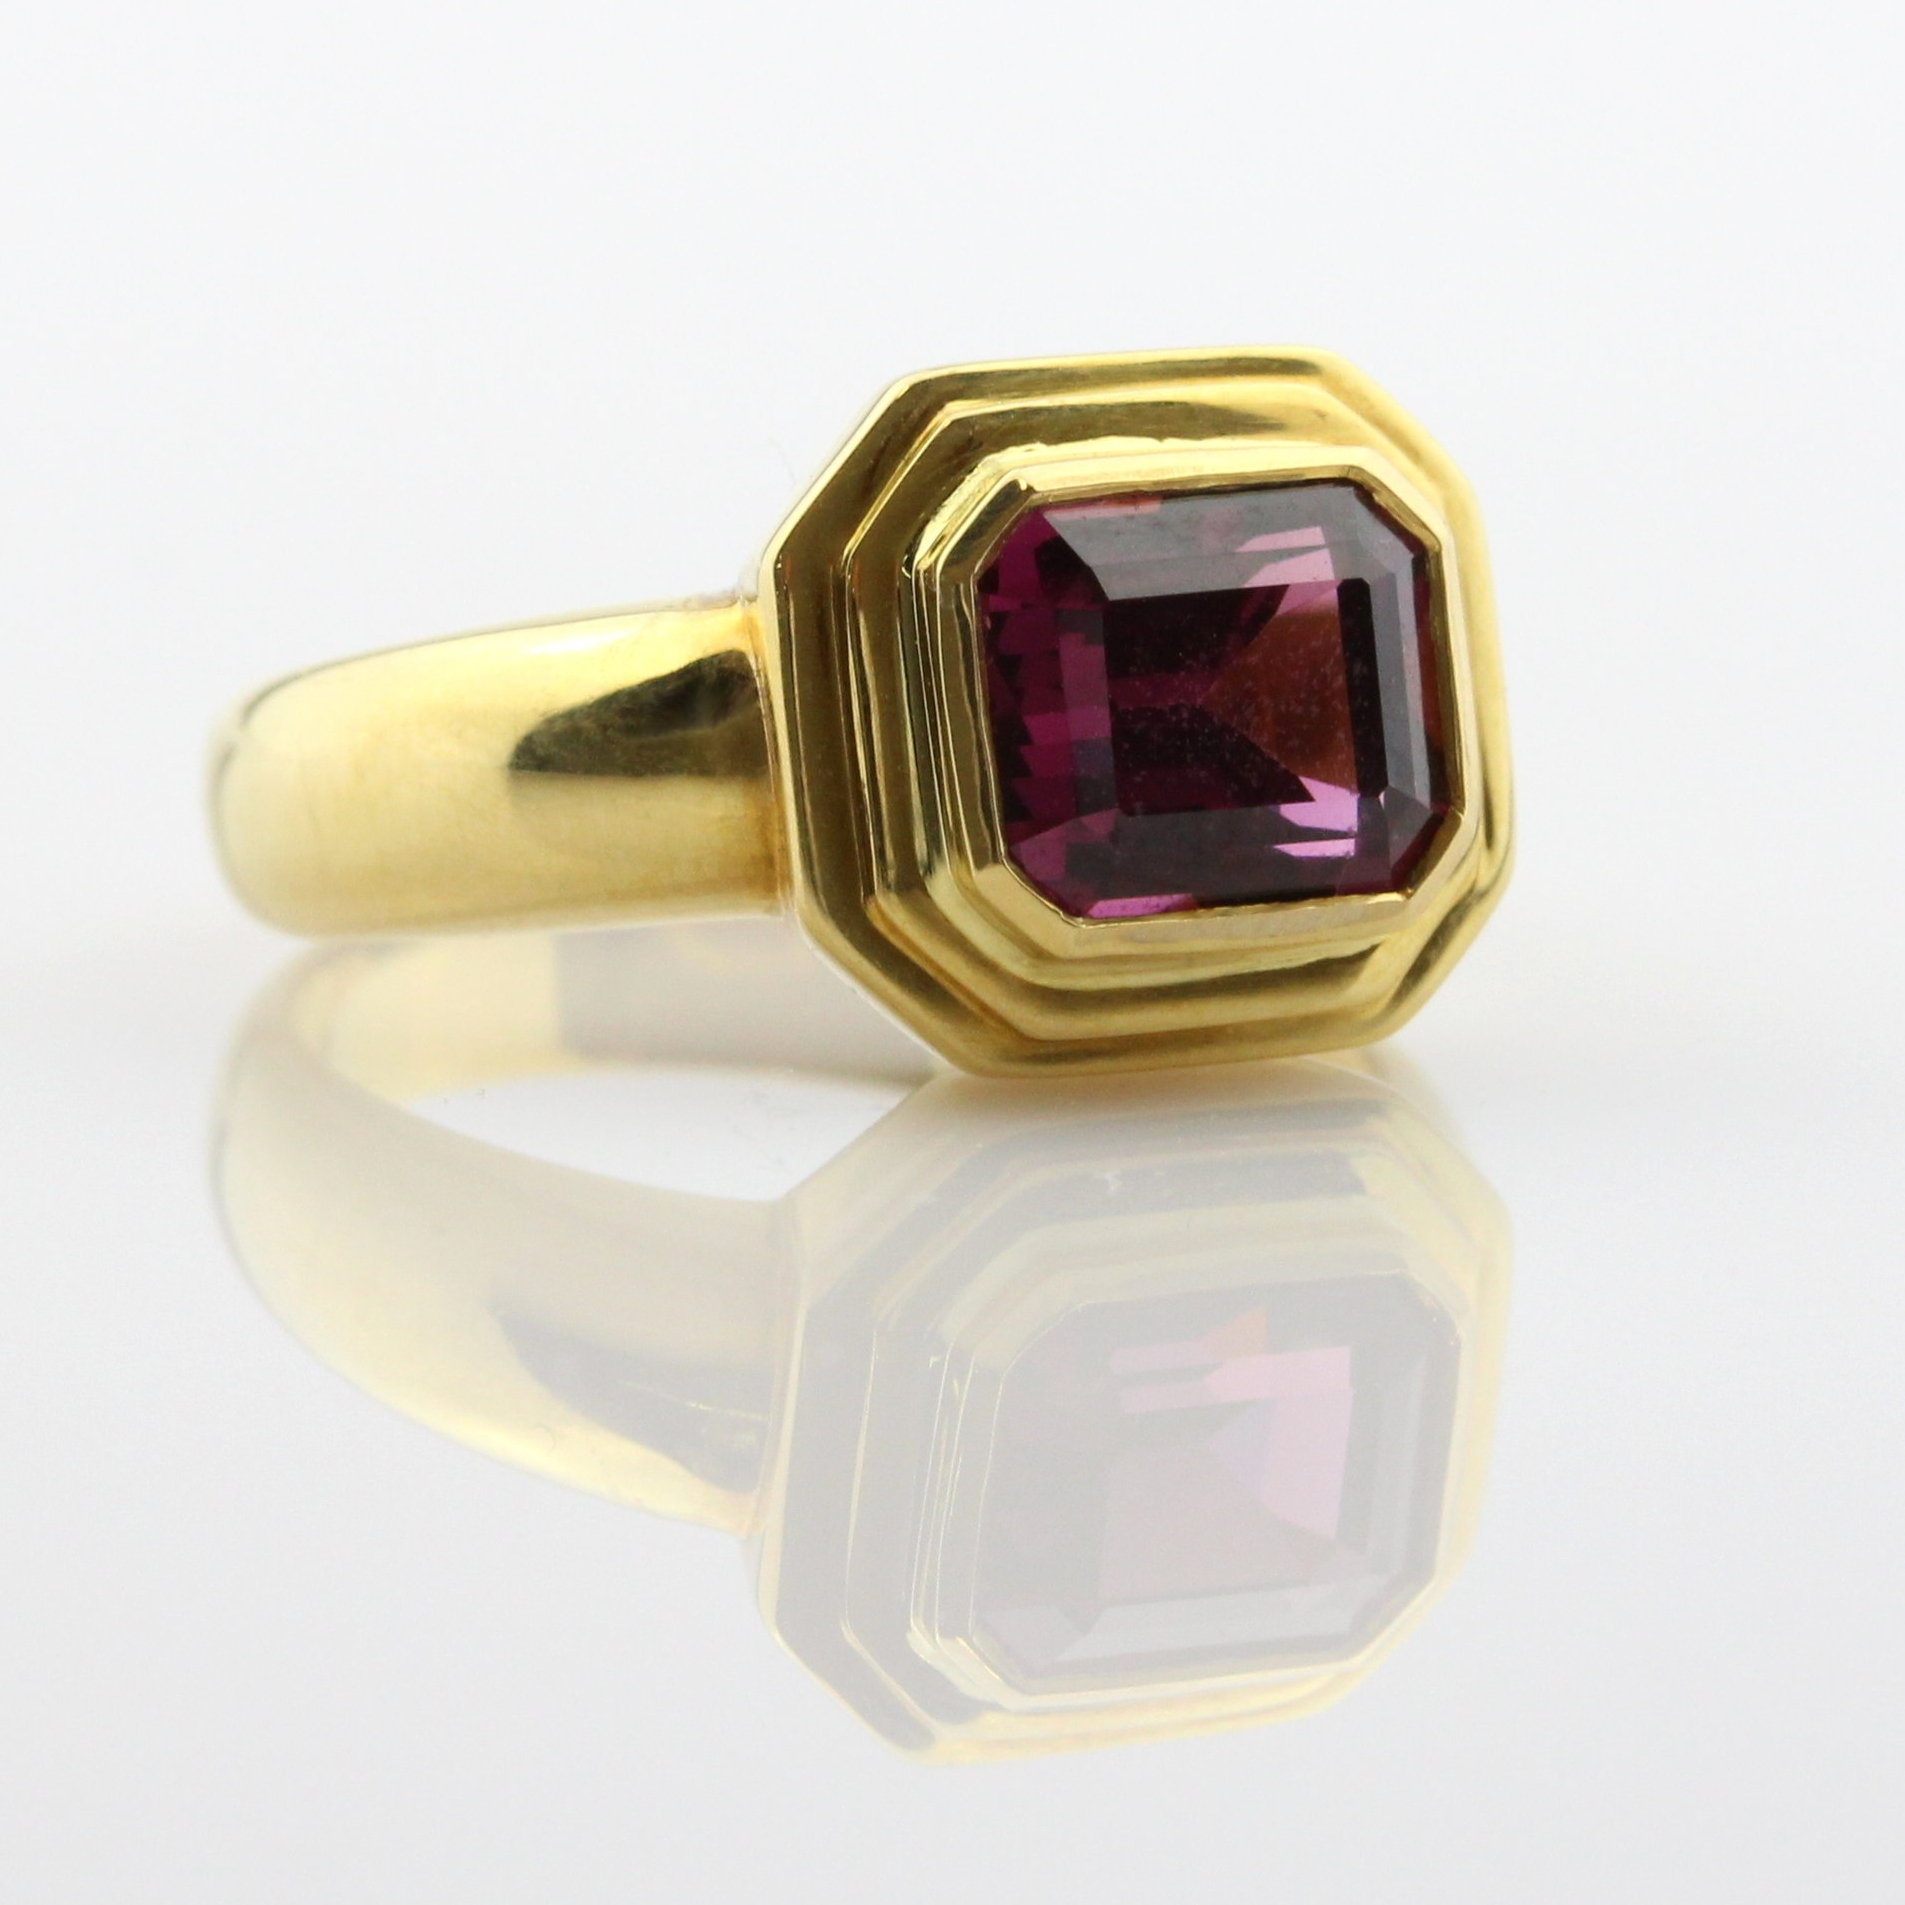 Emerald cut pink spinel bezel set in yellow gold ring.